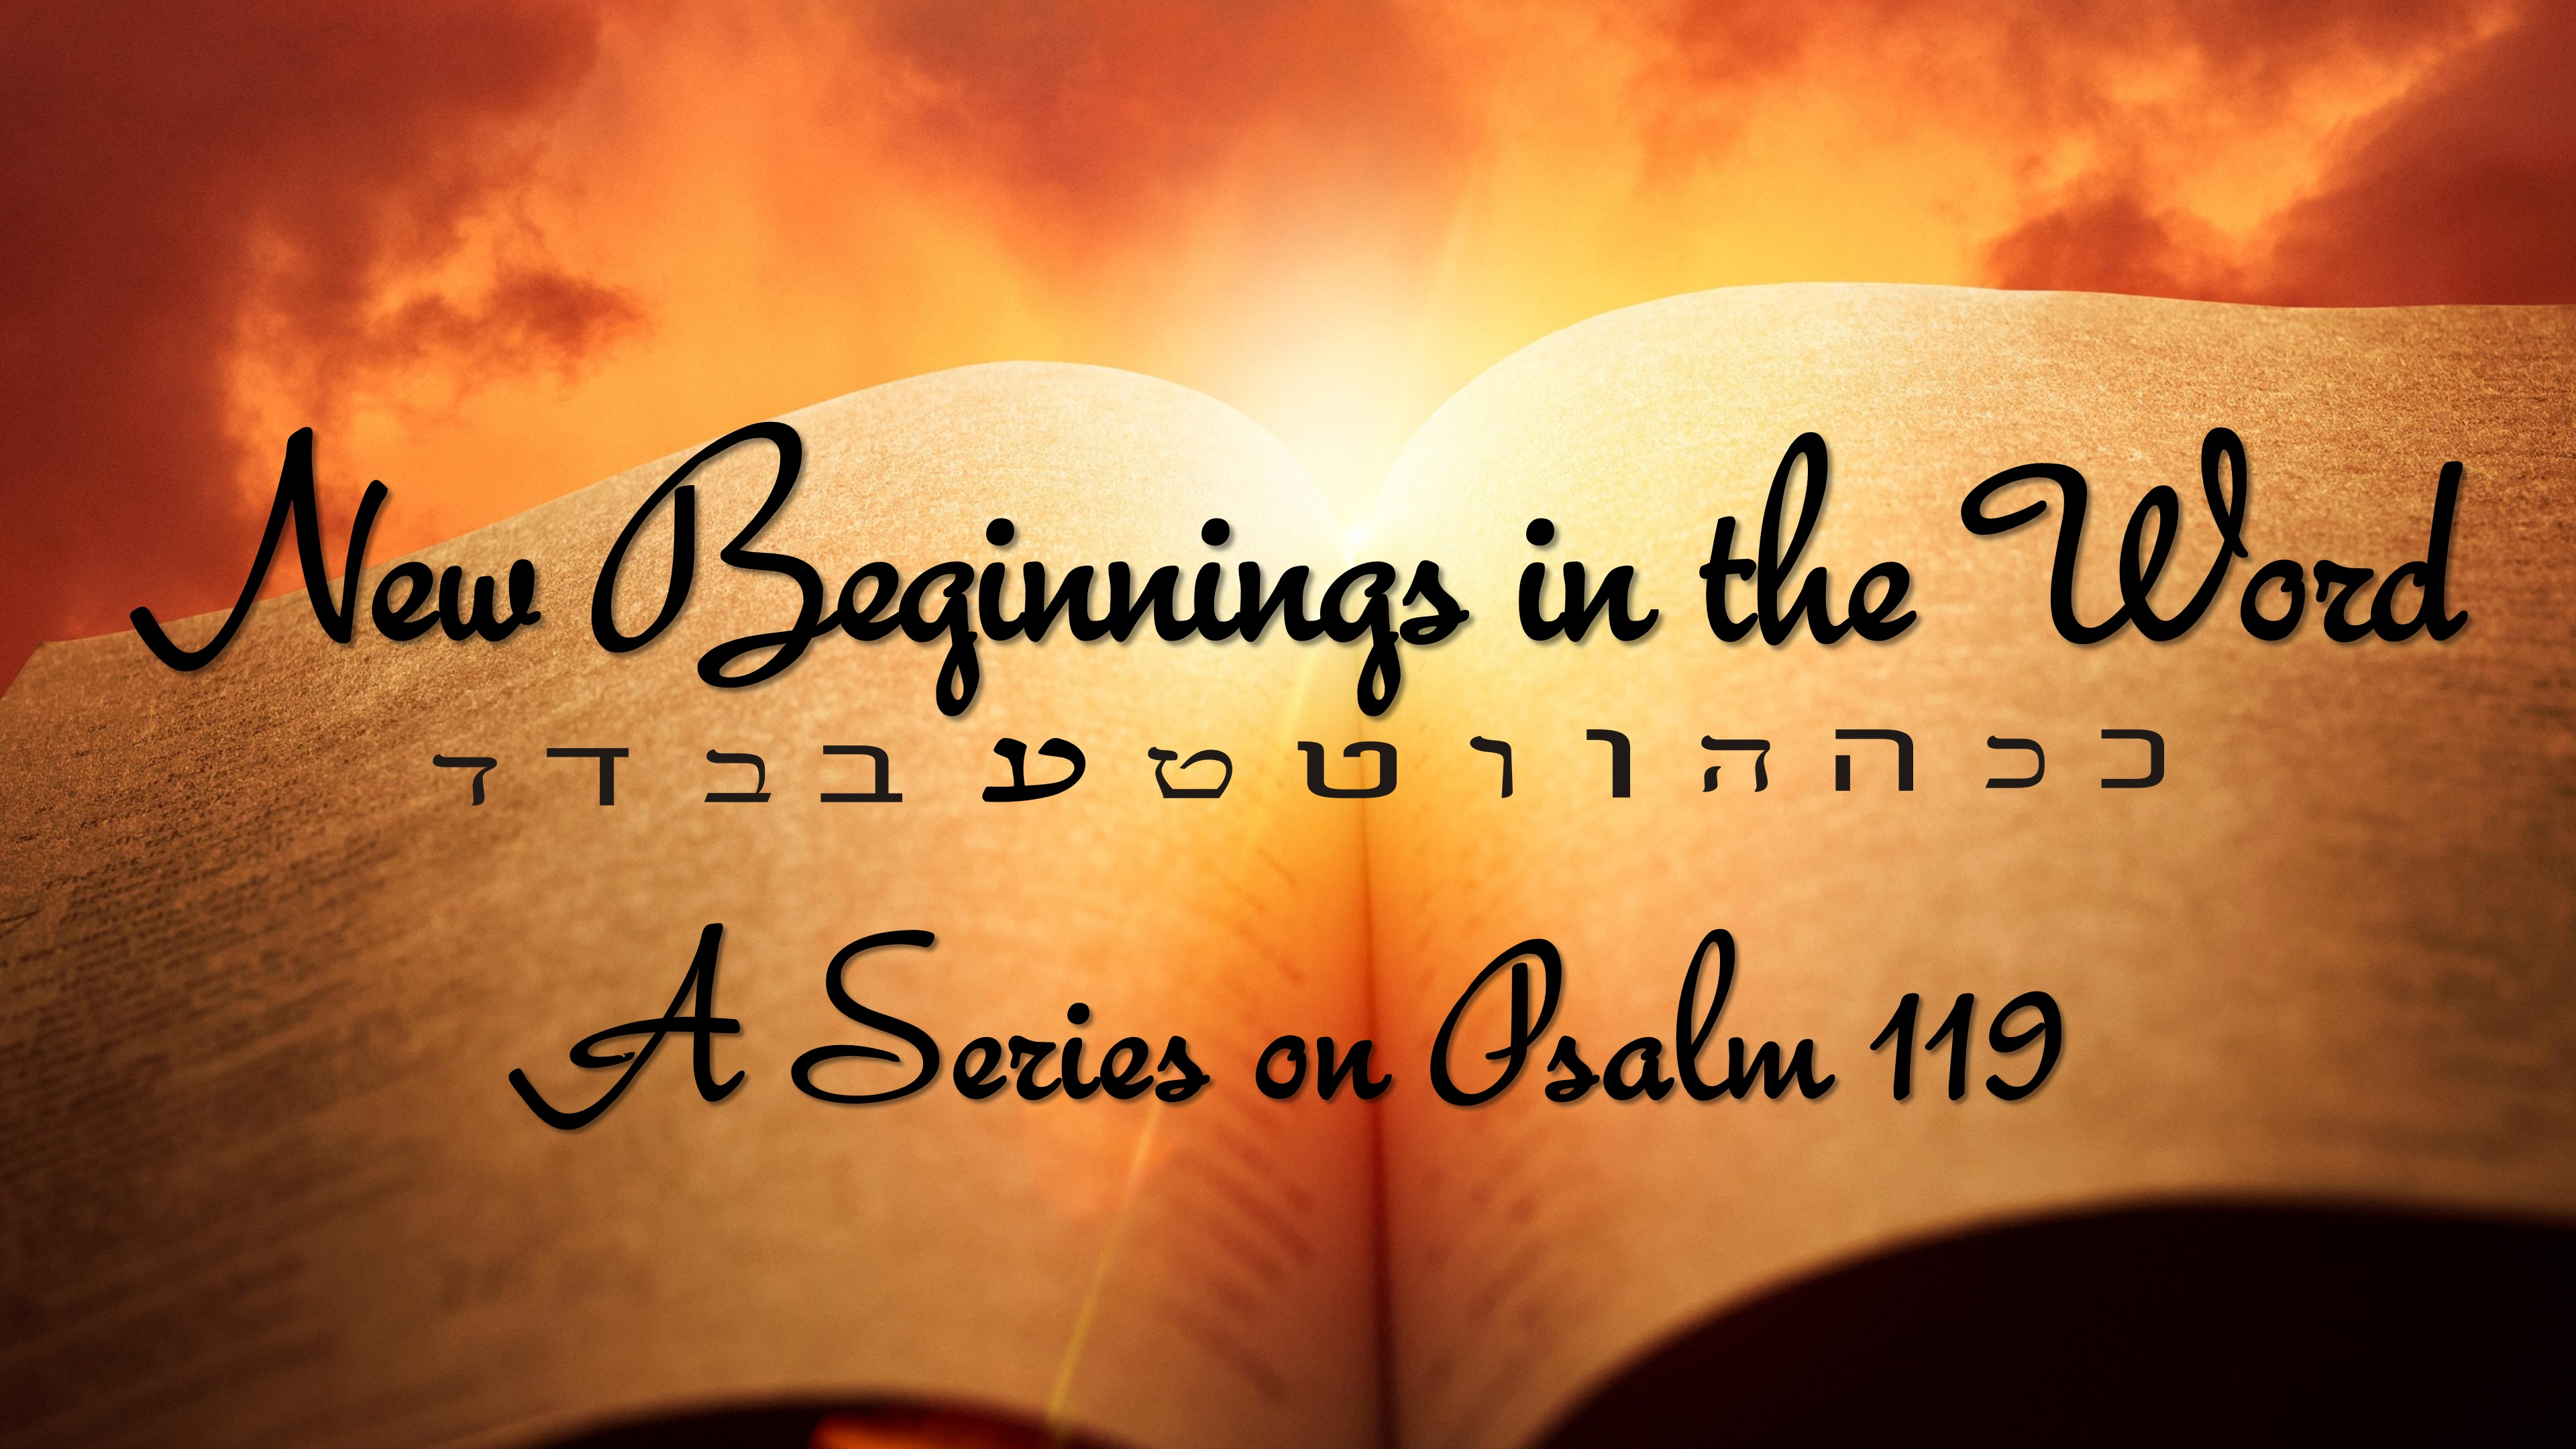 New Beginnings in The Word By Sharing God's Word - New Beginnings in